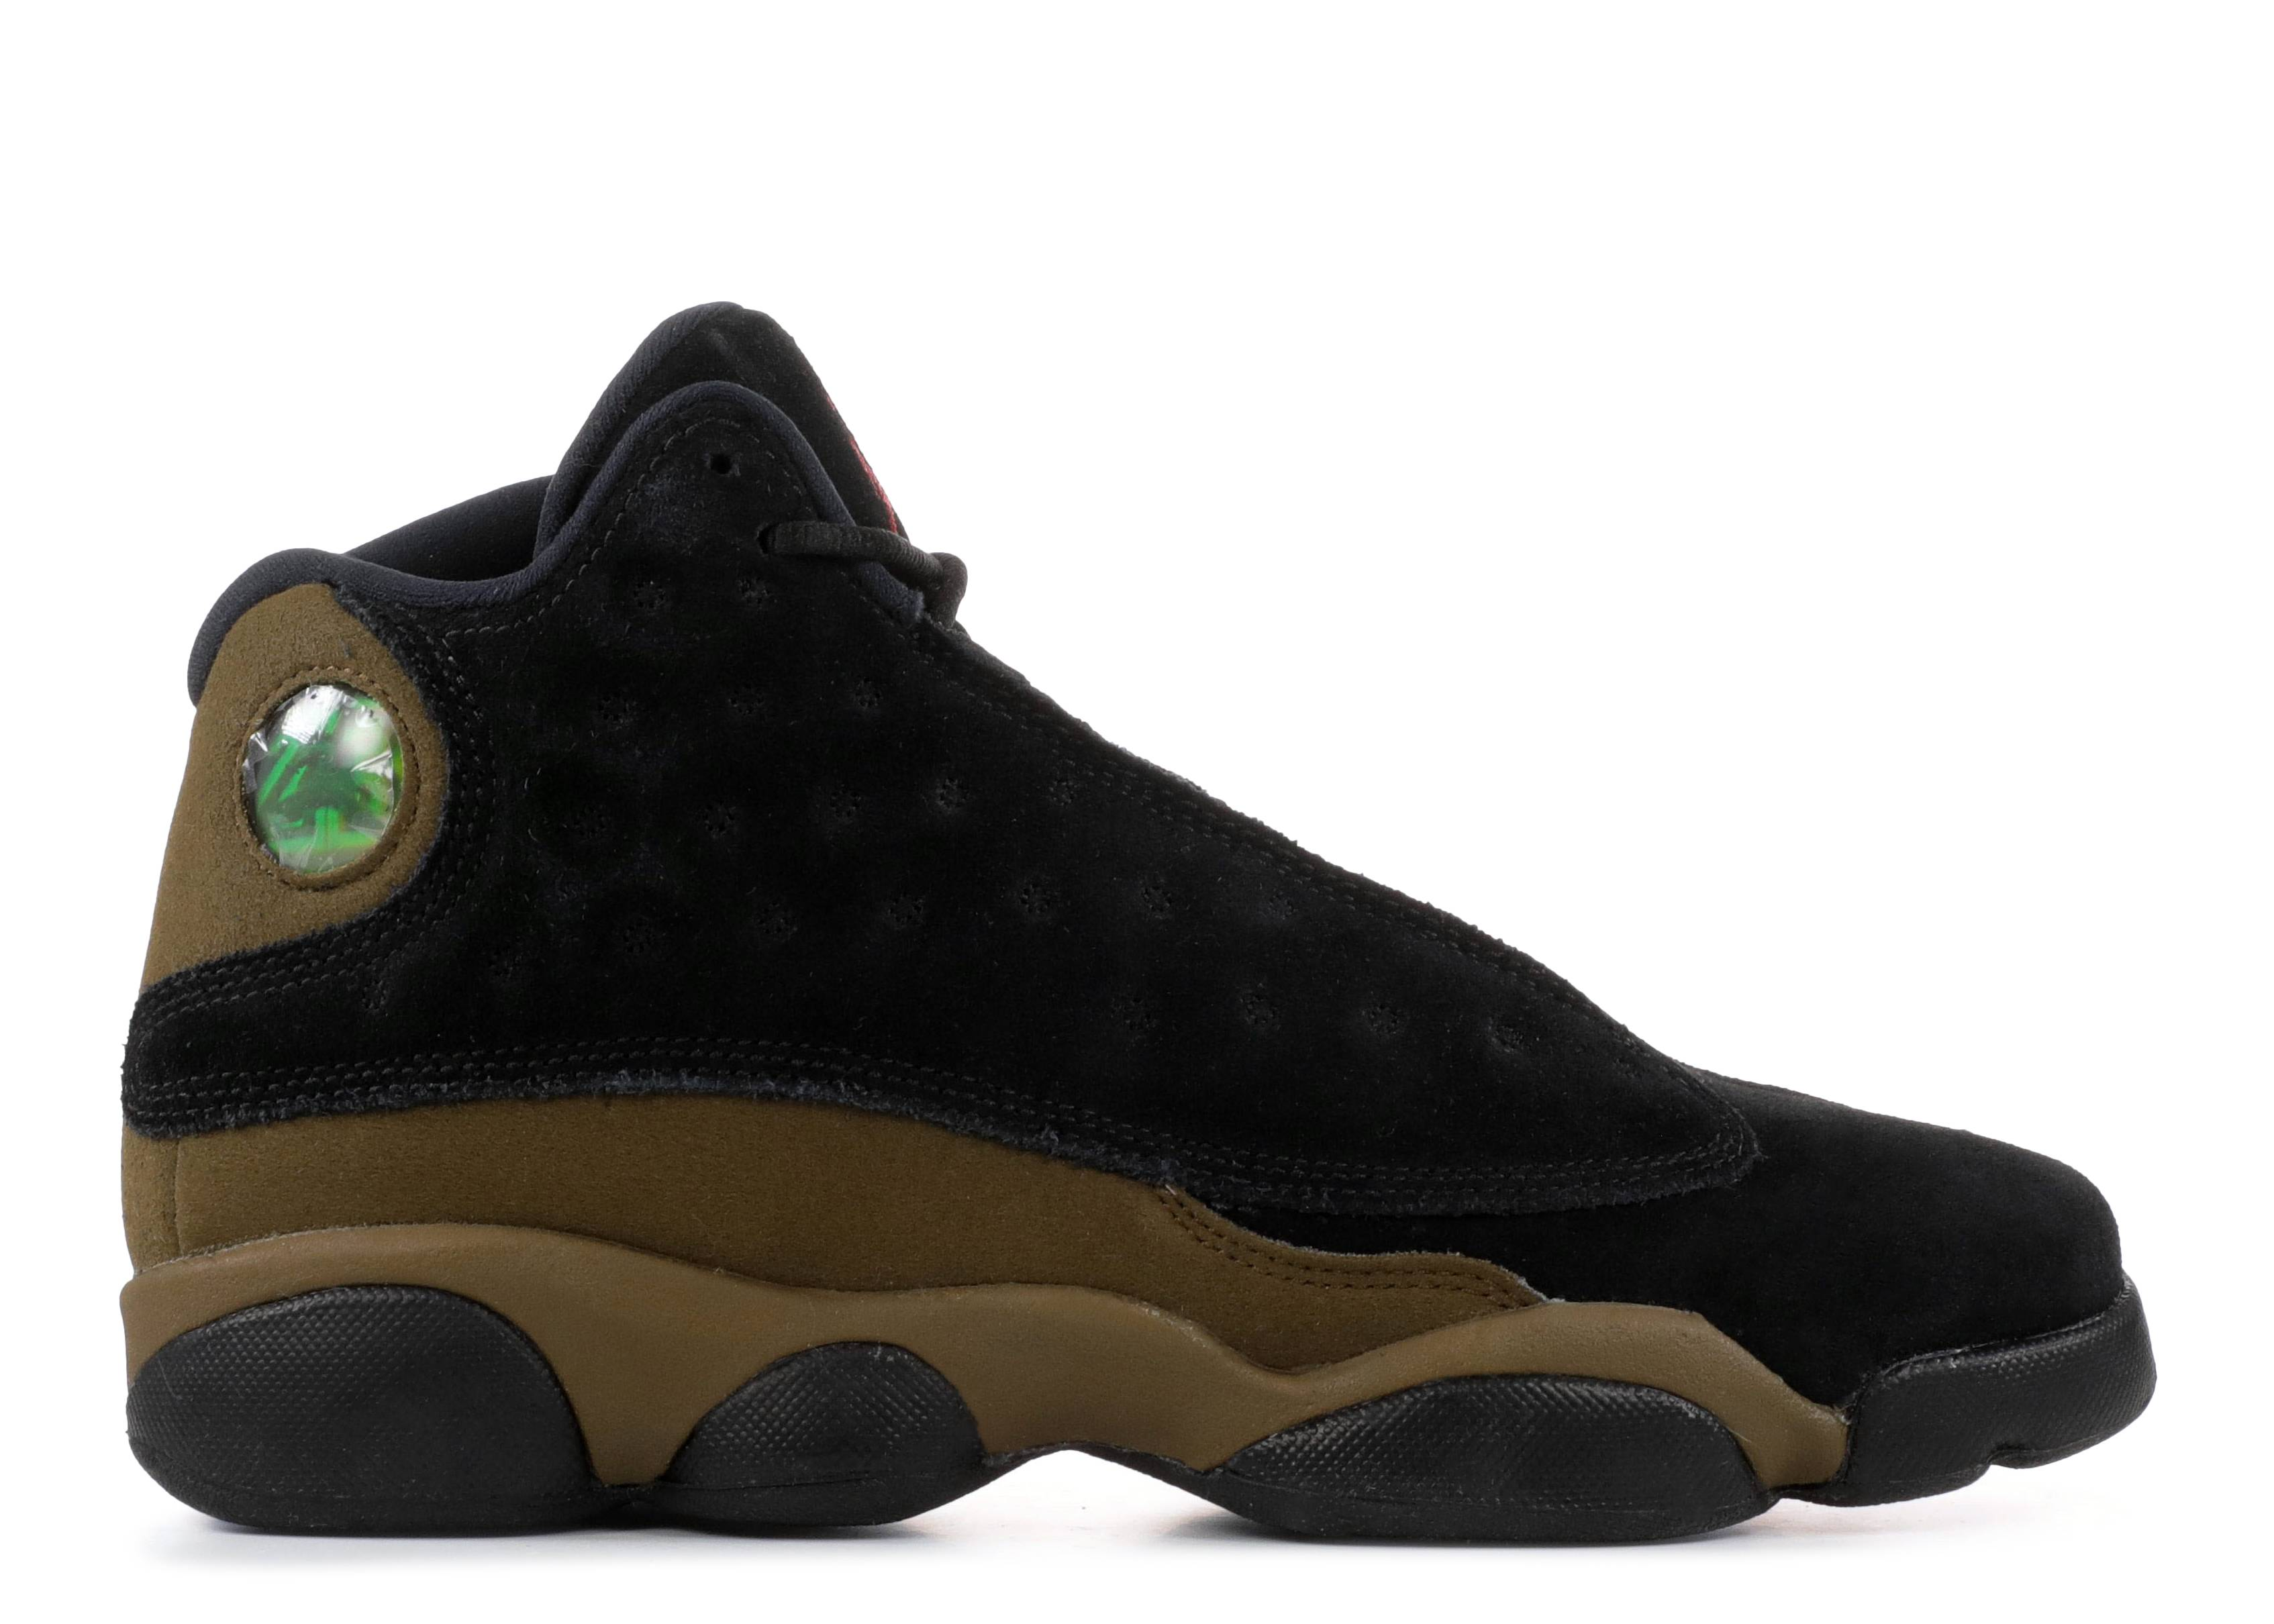 aecec1e3aef0c air jordan 13 retro bg (gs)